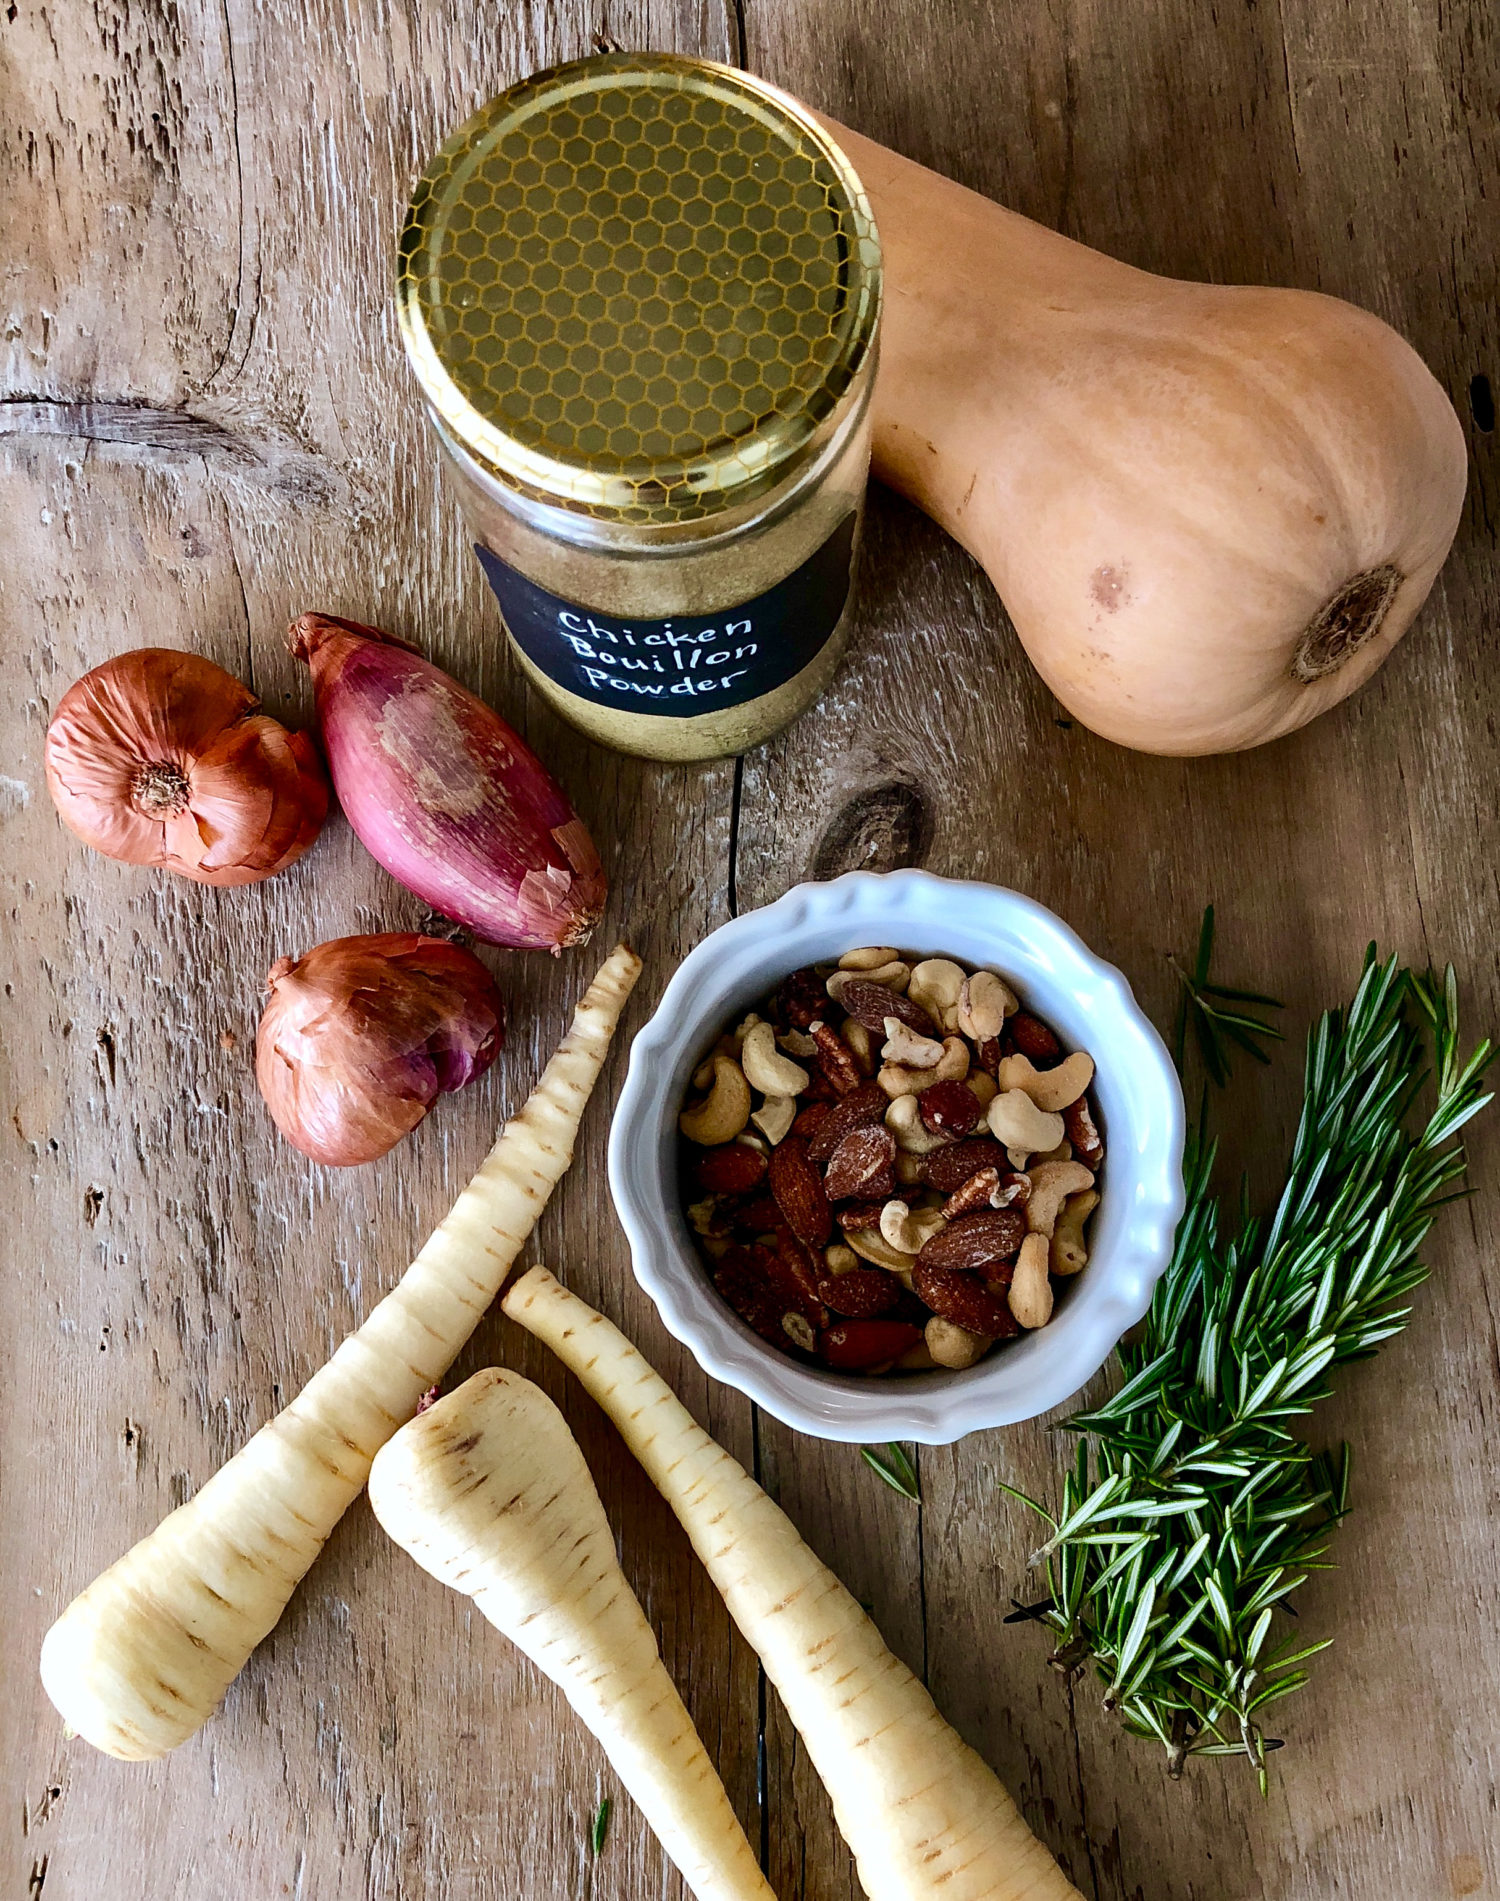 Parsnip, Rosemary and Mixed Nuts Soup